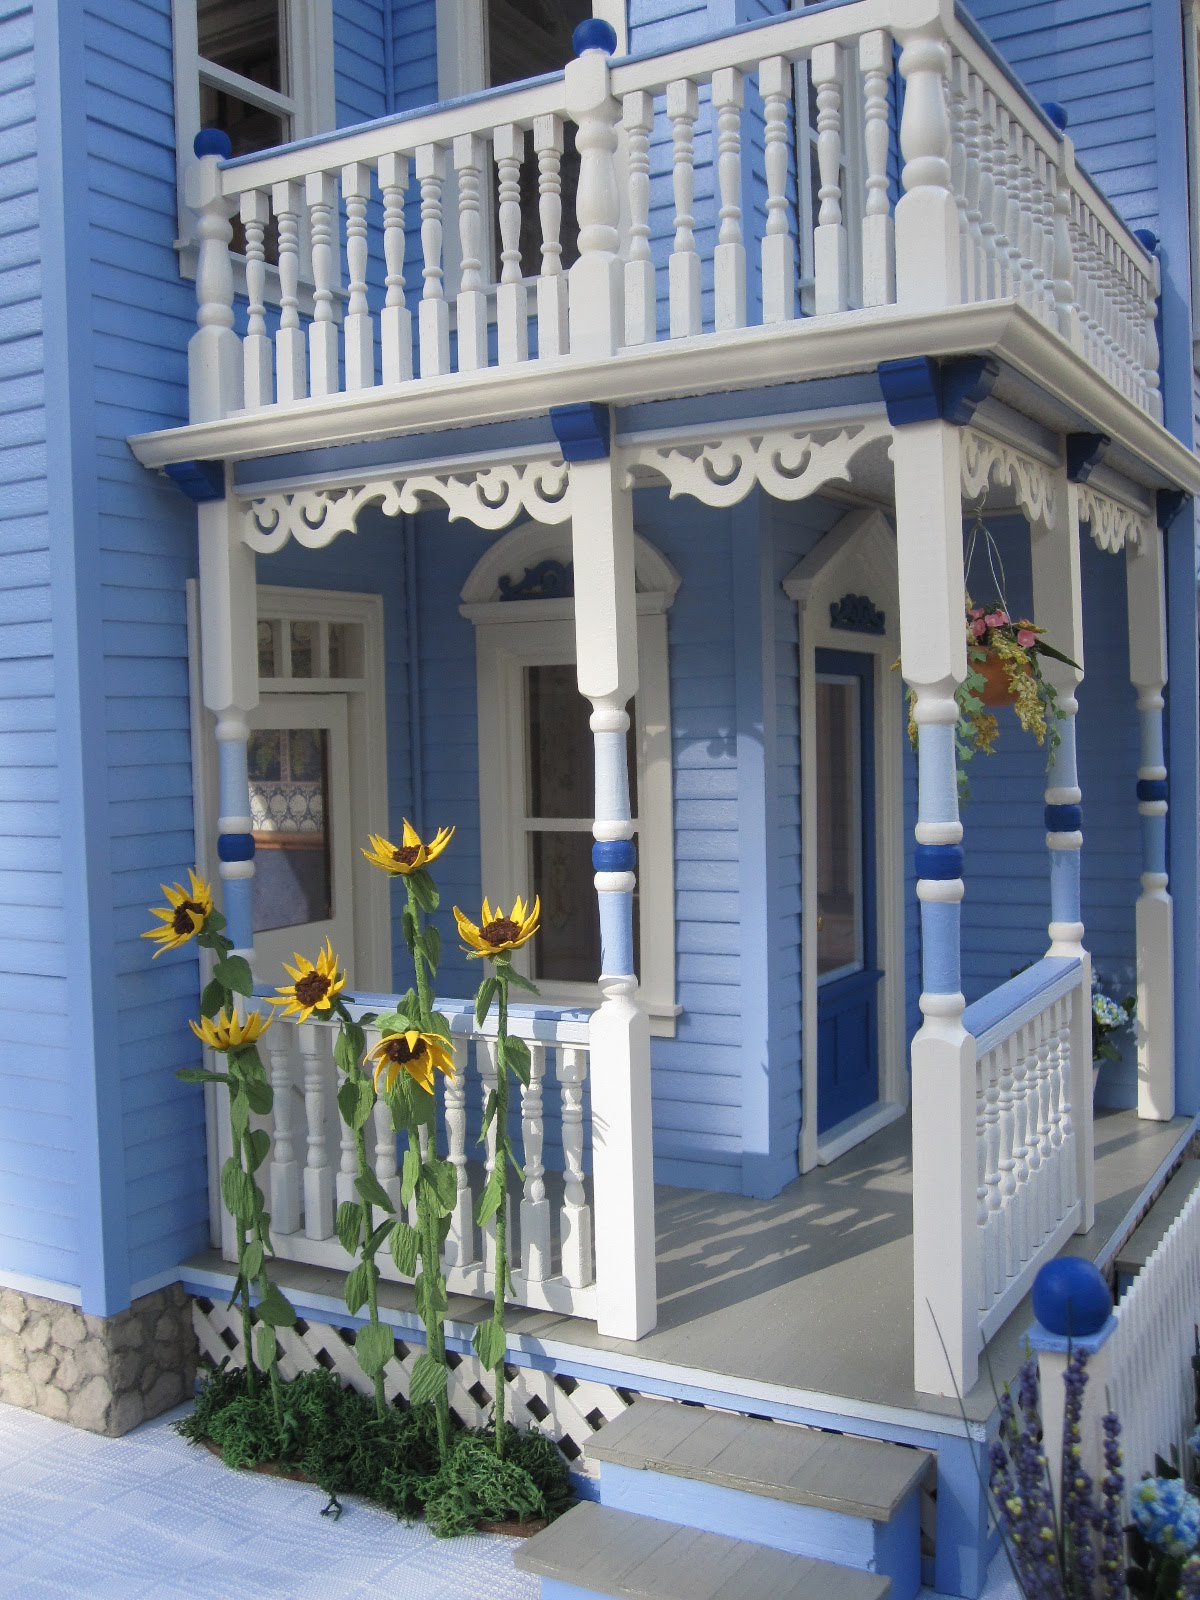 Dollhouses by robin carey the glenview drive blue for Blue and white house